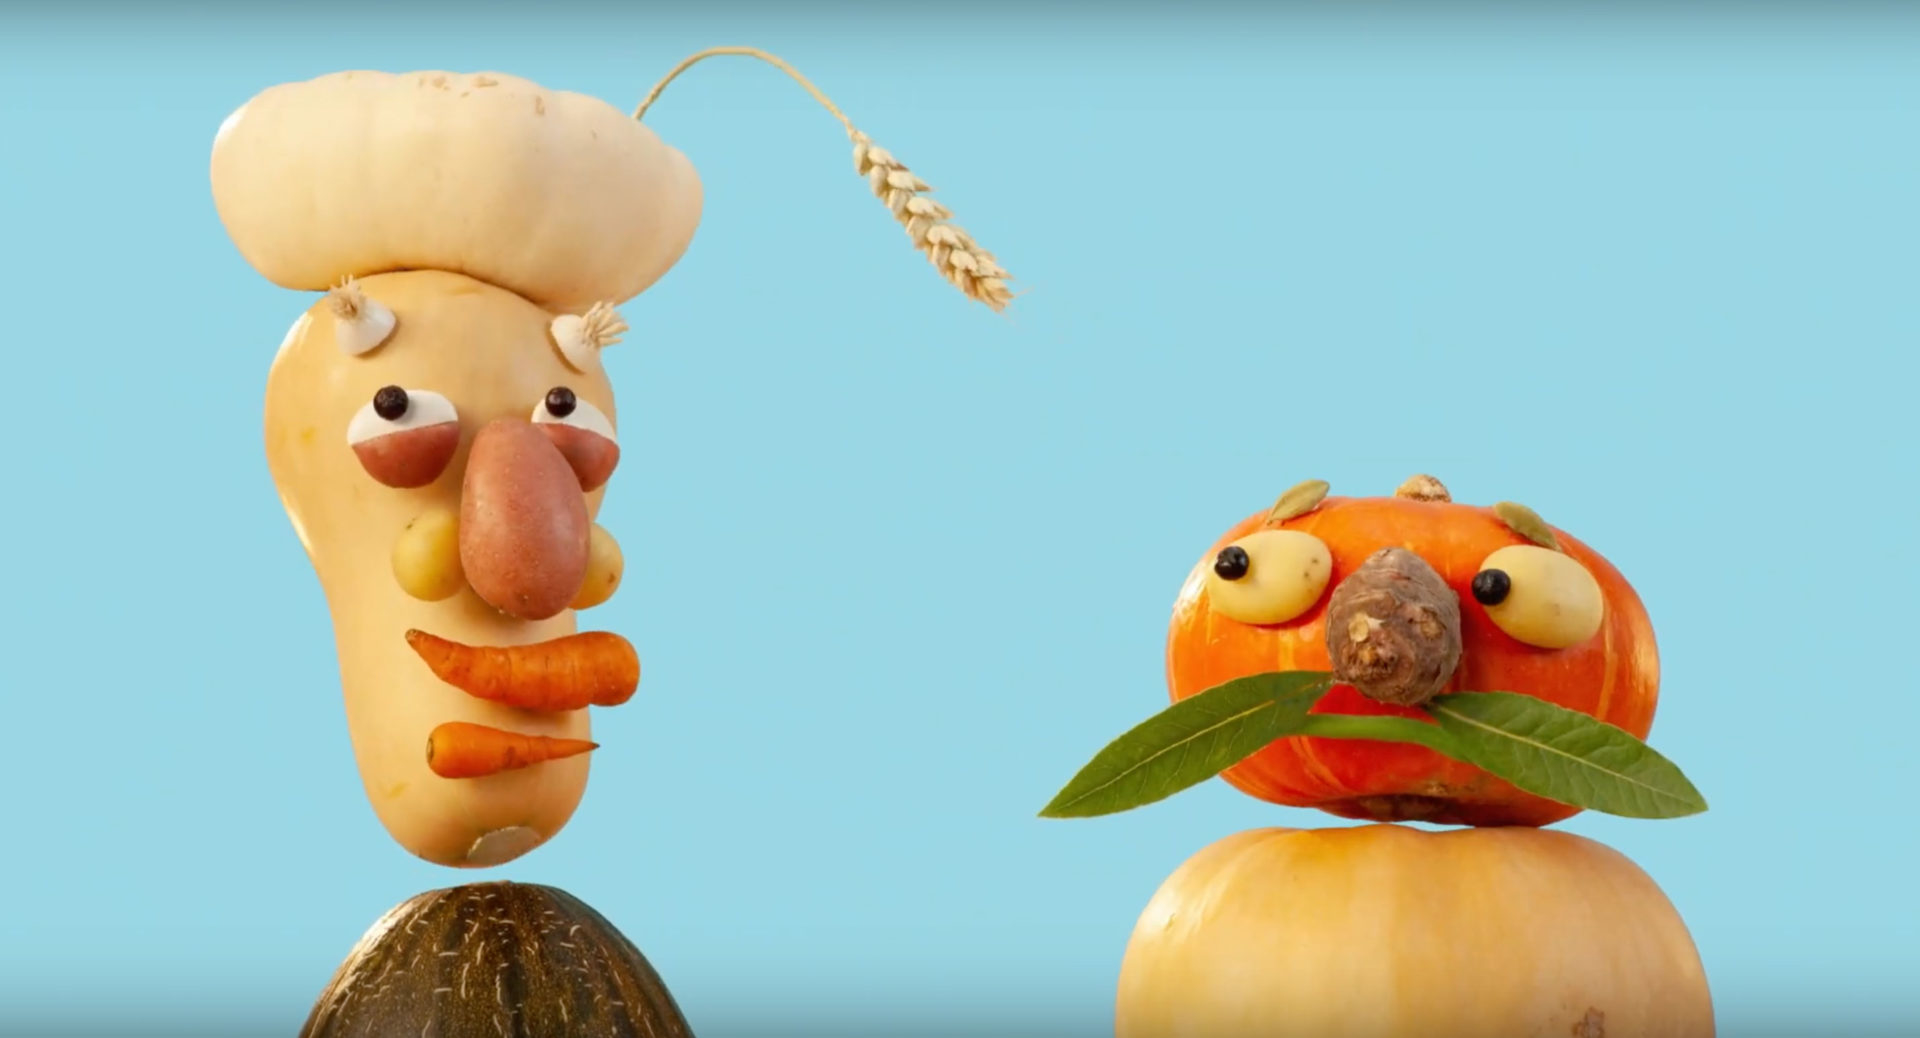 vegetables shaped like two heads in a commercial for Rabobank